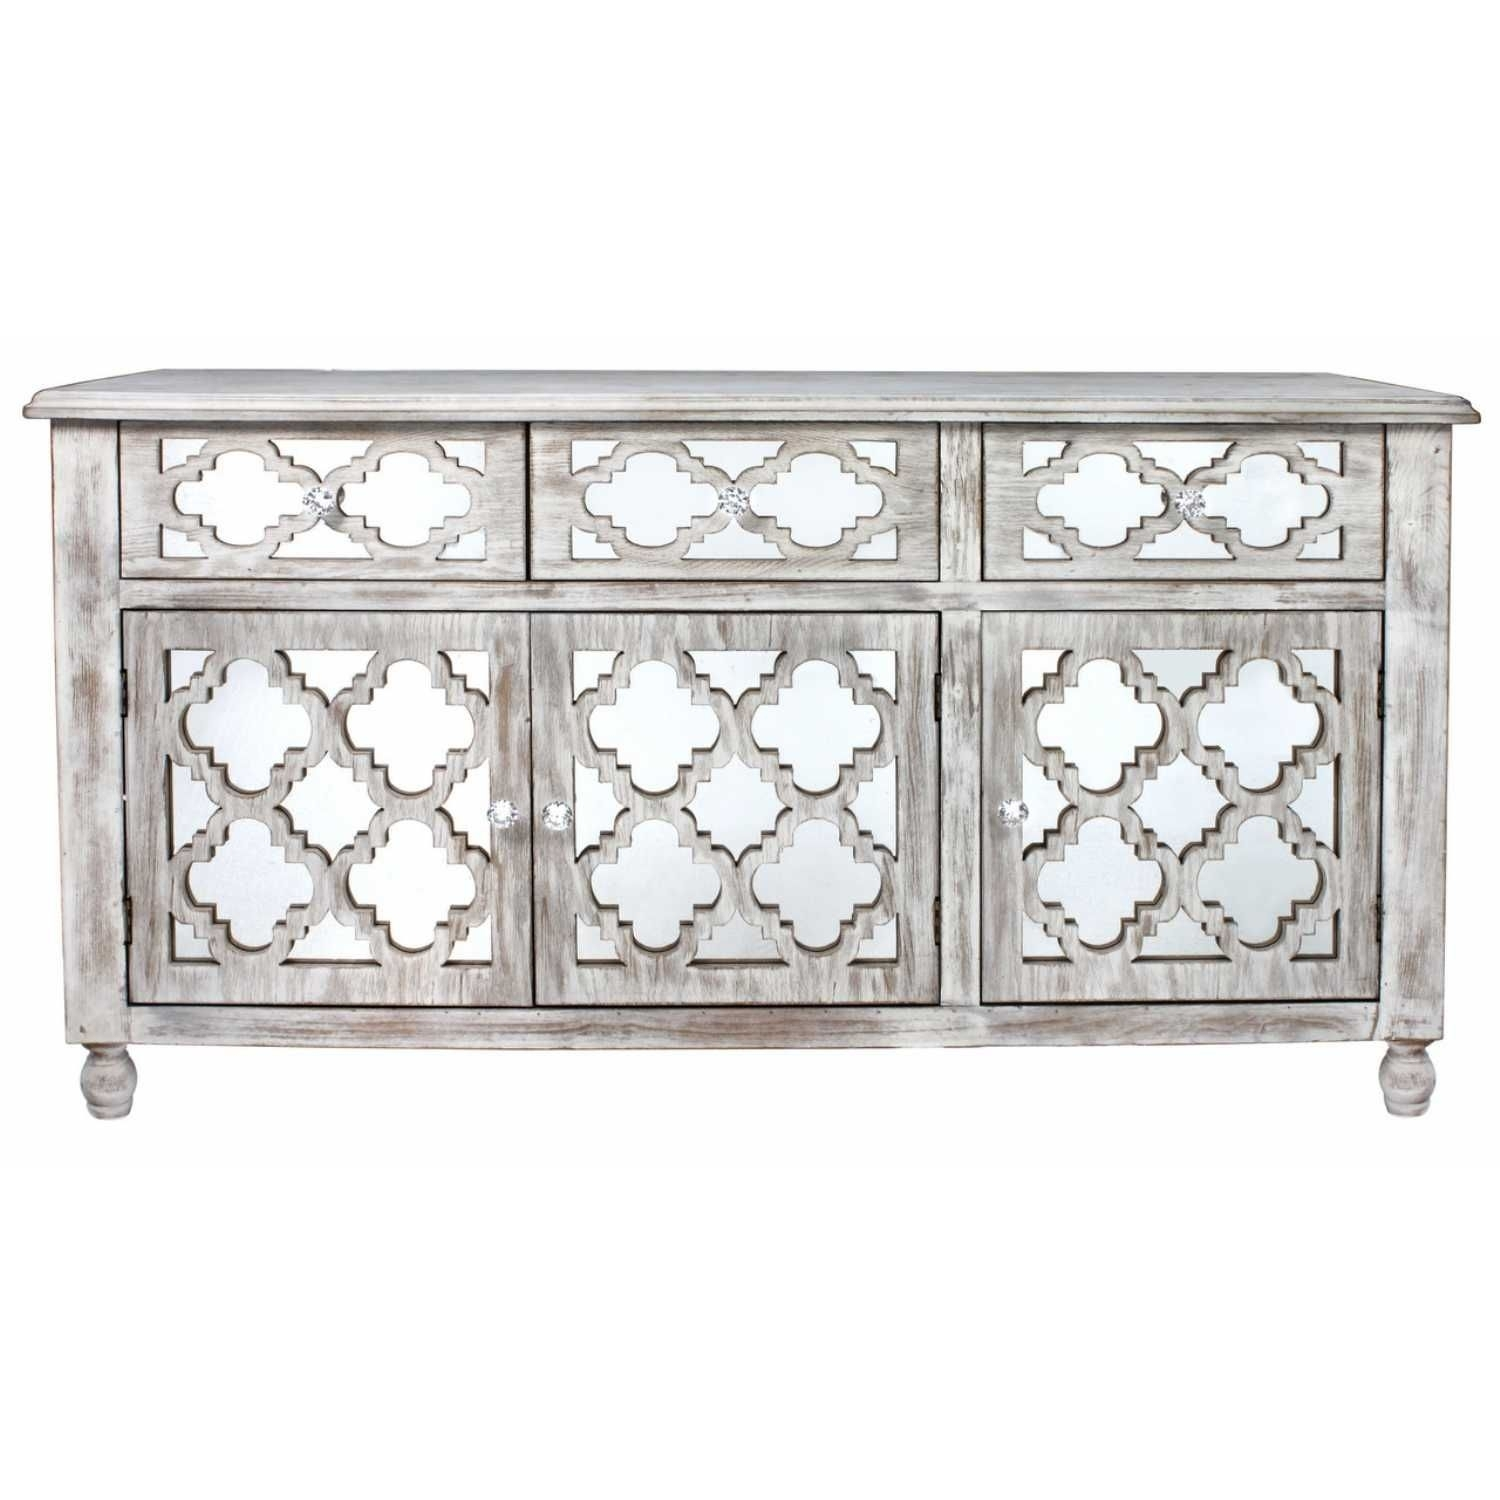 Marrakech Washed Ash Modern Mirrored Glass 3 Door 3 Drawer Cabinet within White Wash 3-Door 3-Drawer Sideboards (Image 18 of 30)